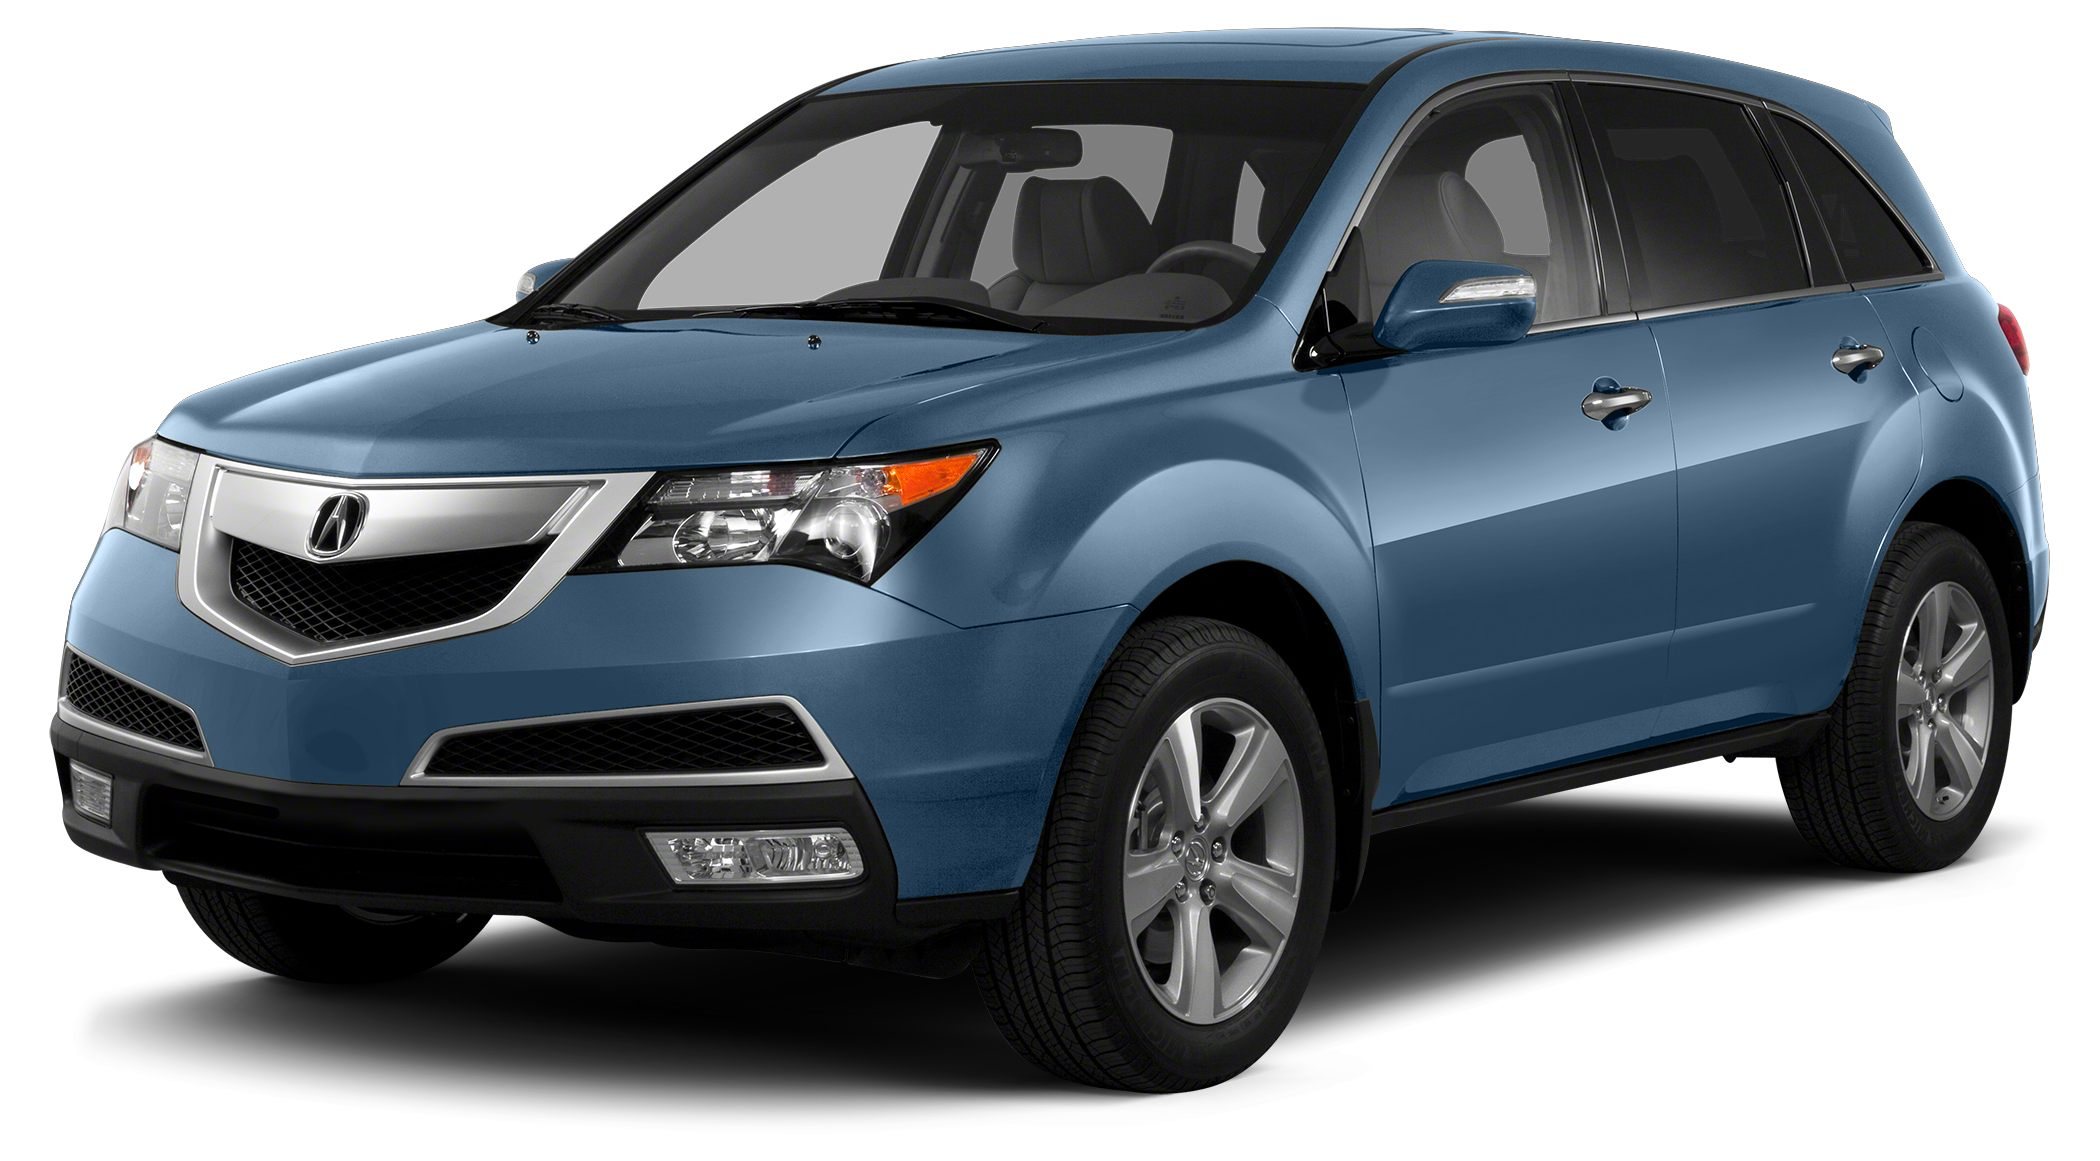 2013 Acura MDX 37 Technology Acura Certified - Lowest Miles Technology Package - Carfax One Owner